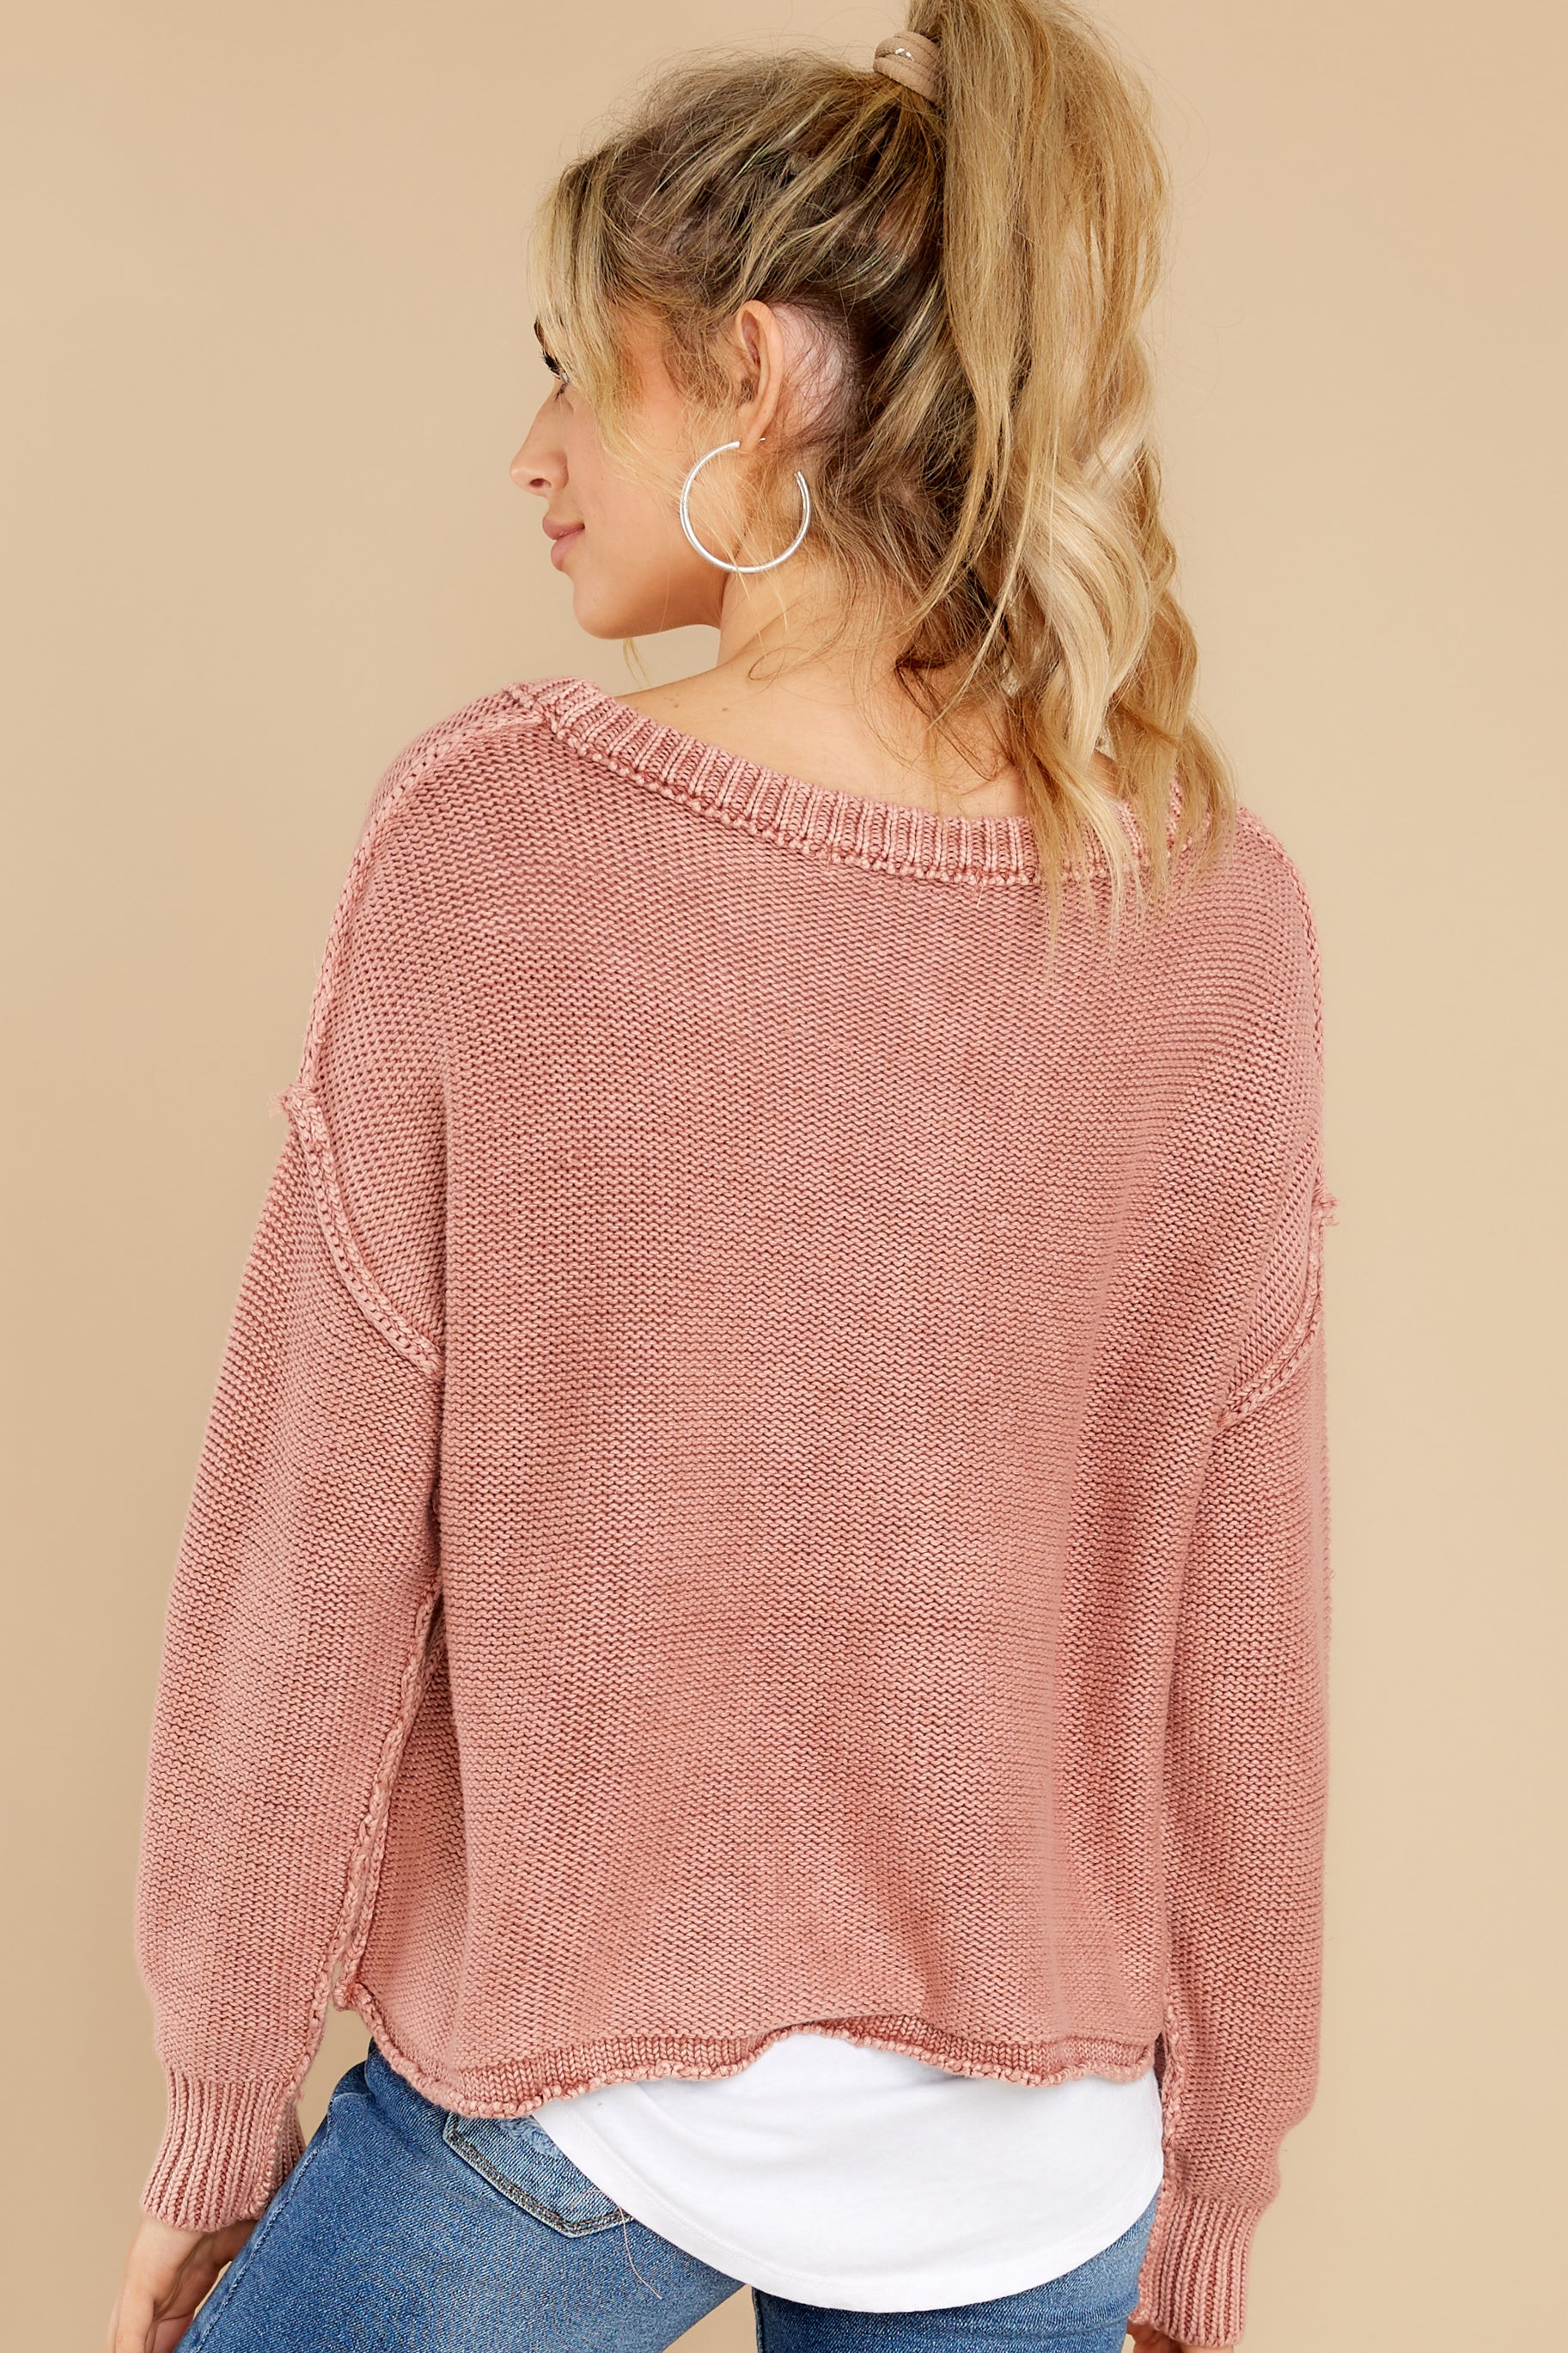 8 All Your Love Dusty Rose Sweater at reddress.com